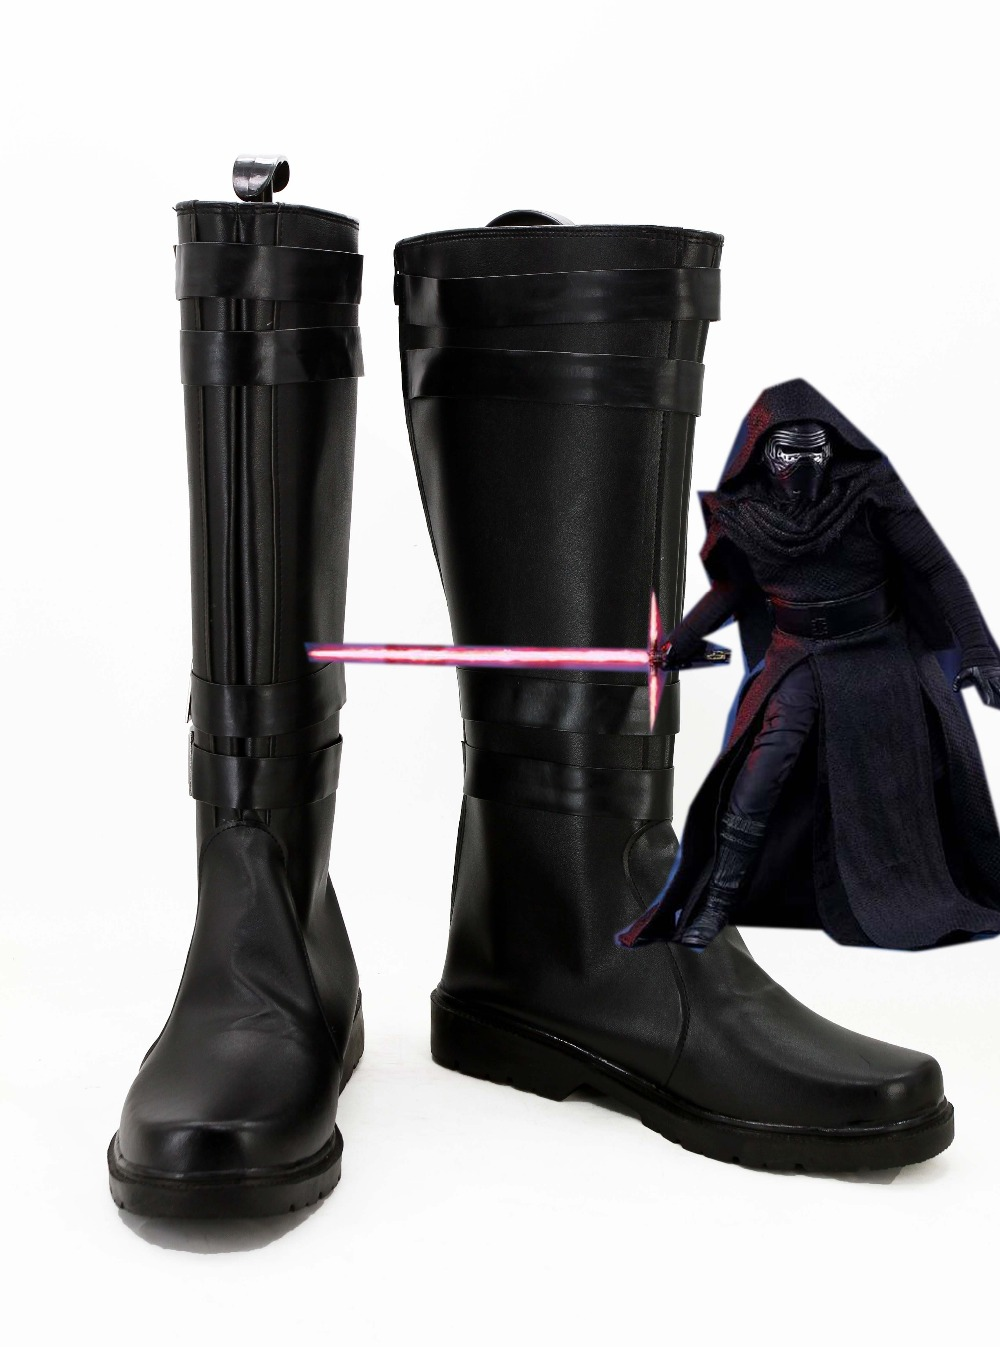 Star Wars 7: Force Awakens Kylo Ren Boots Shoes Cosplay Costume Custom Custom Made